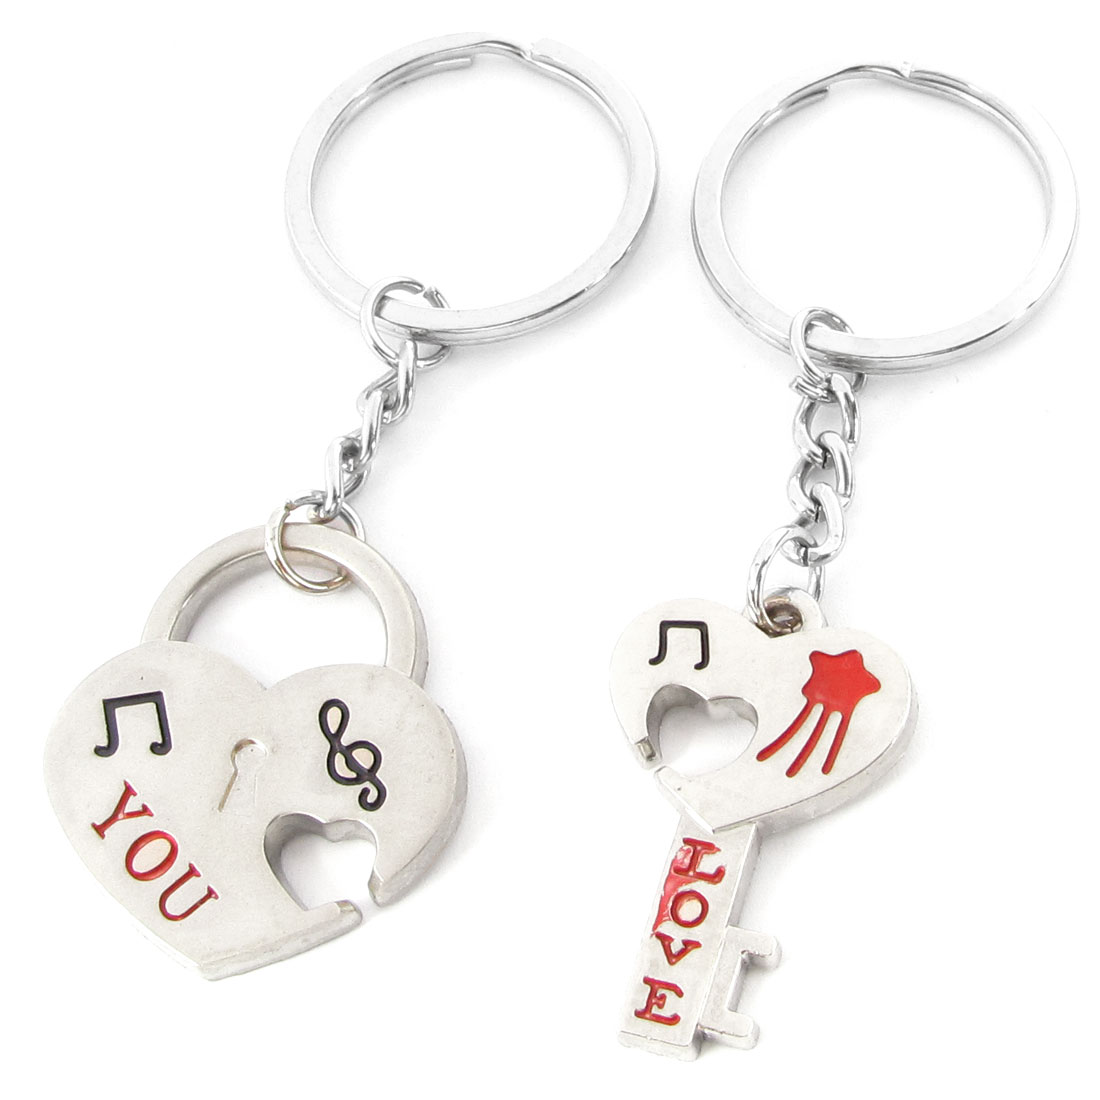 Lovers Silver Tone Heart Lock Key Pattern Pendant 3mm Dia Ring Keychain Pair